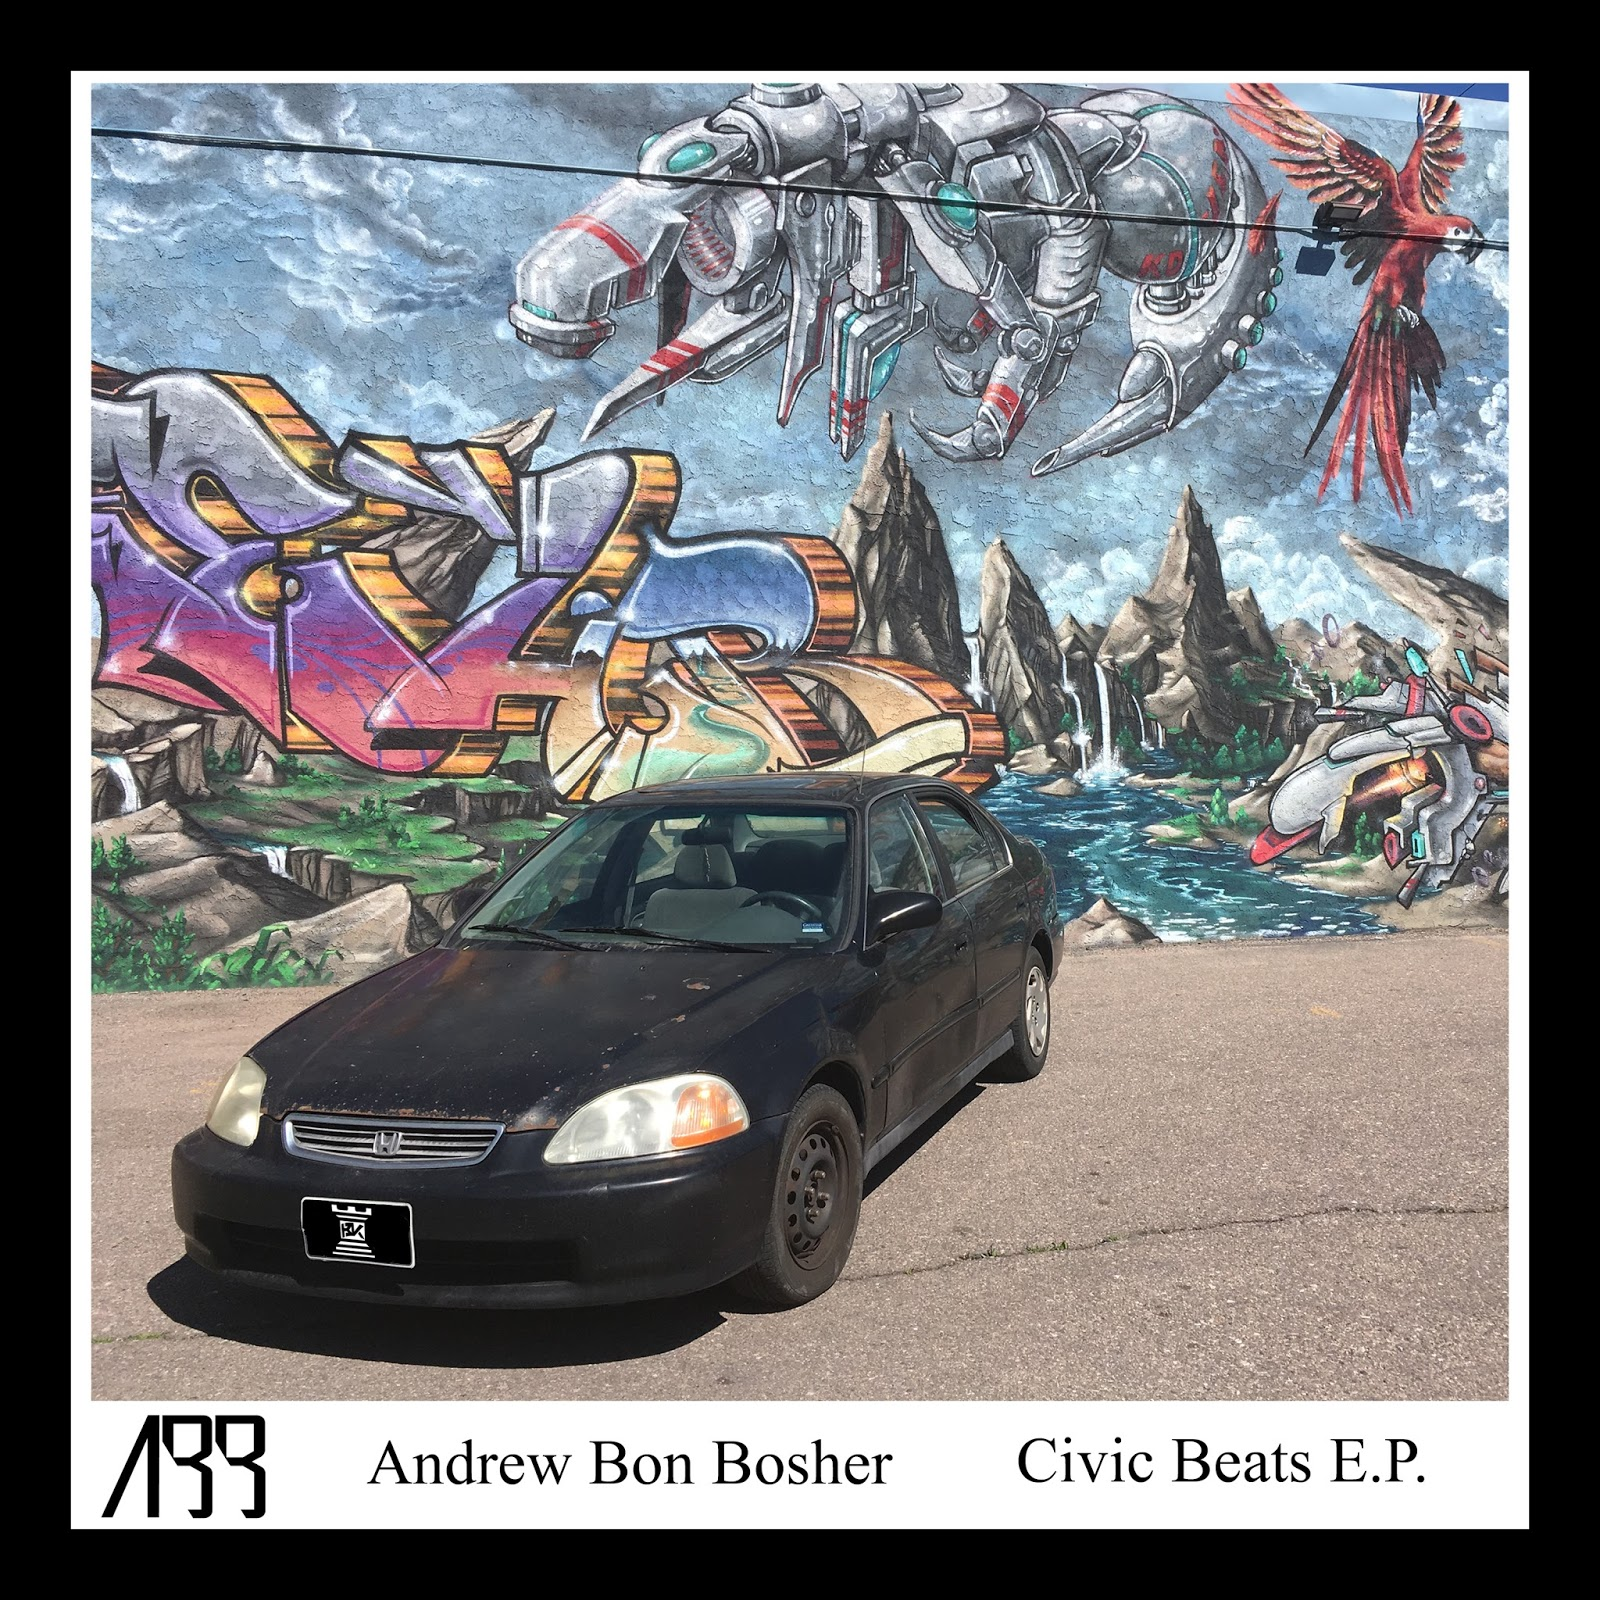 http://www.bit.ly/abbcivicbeats